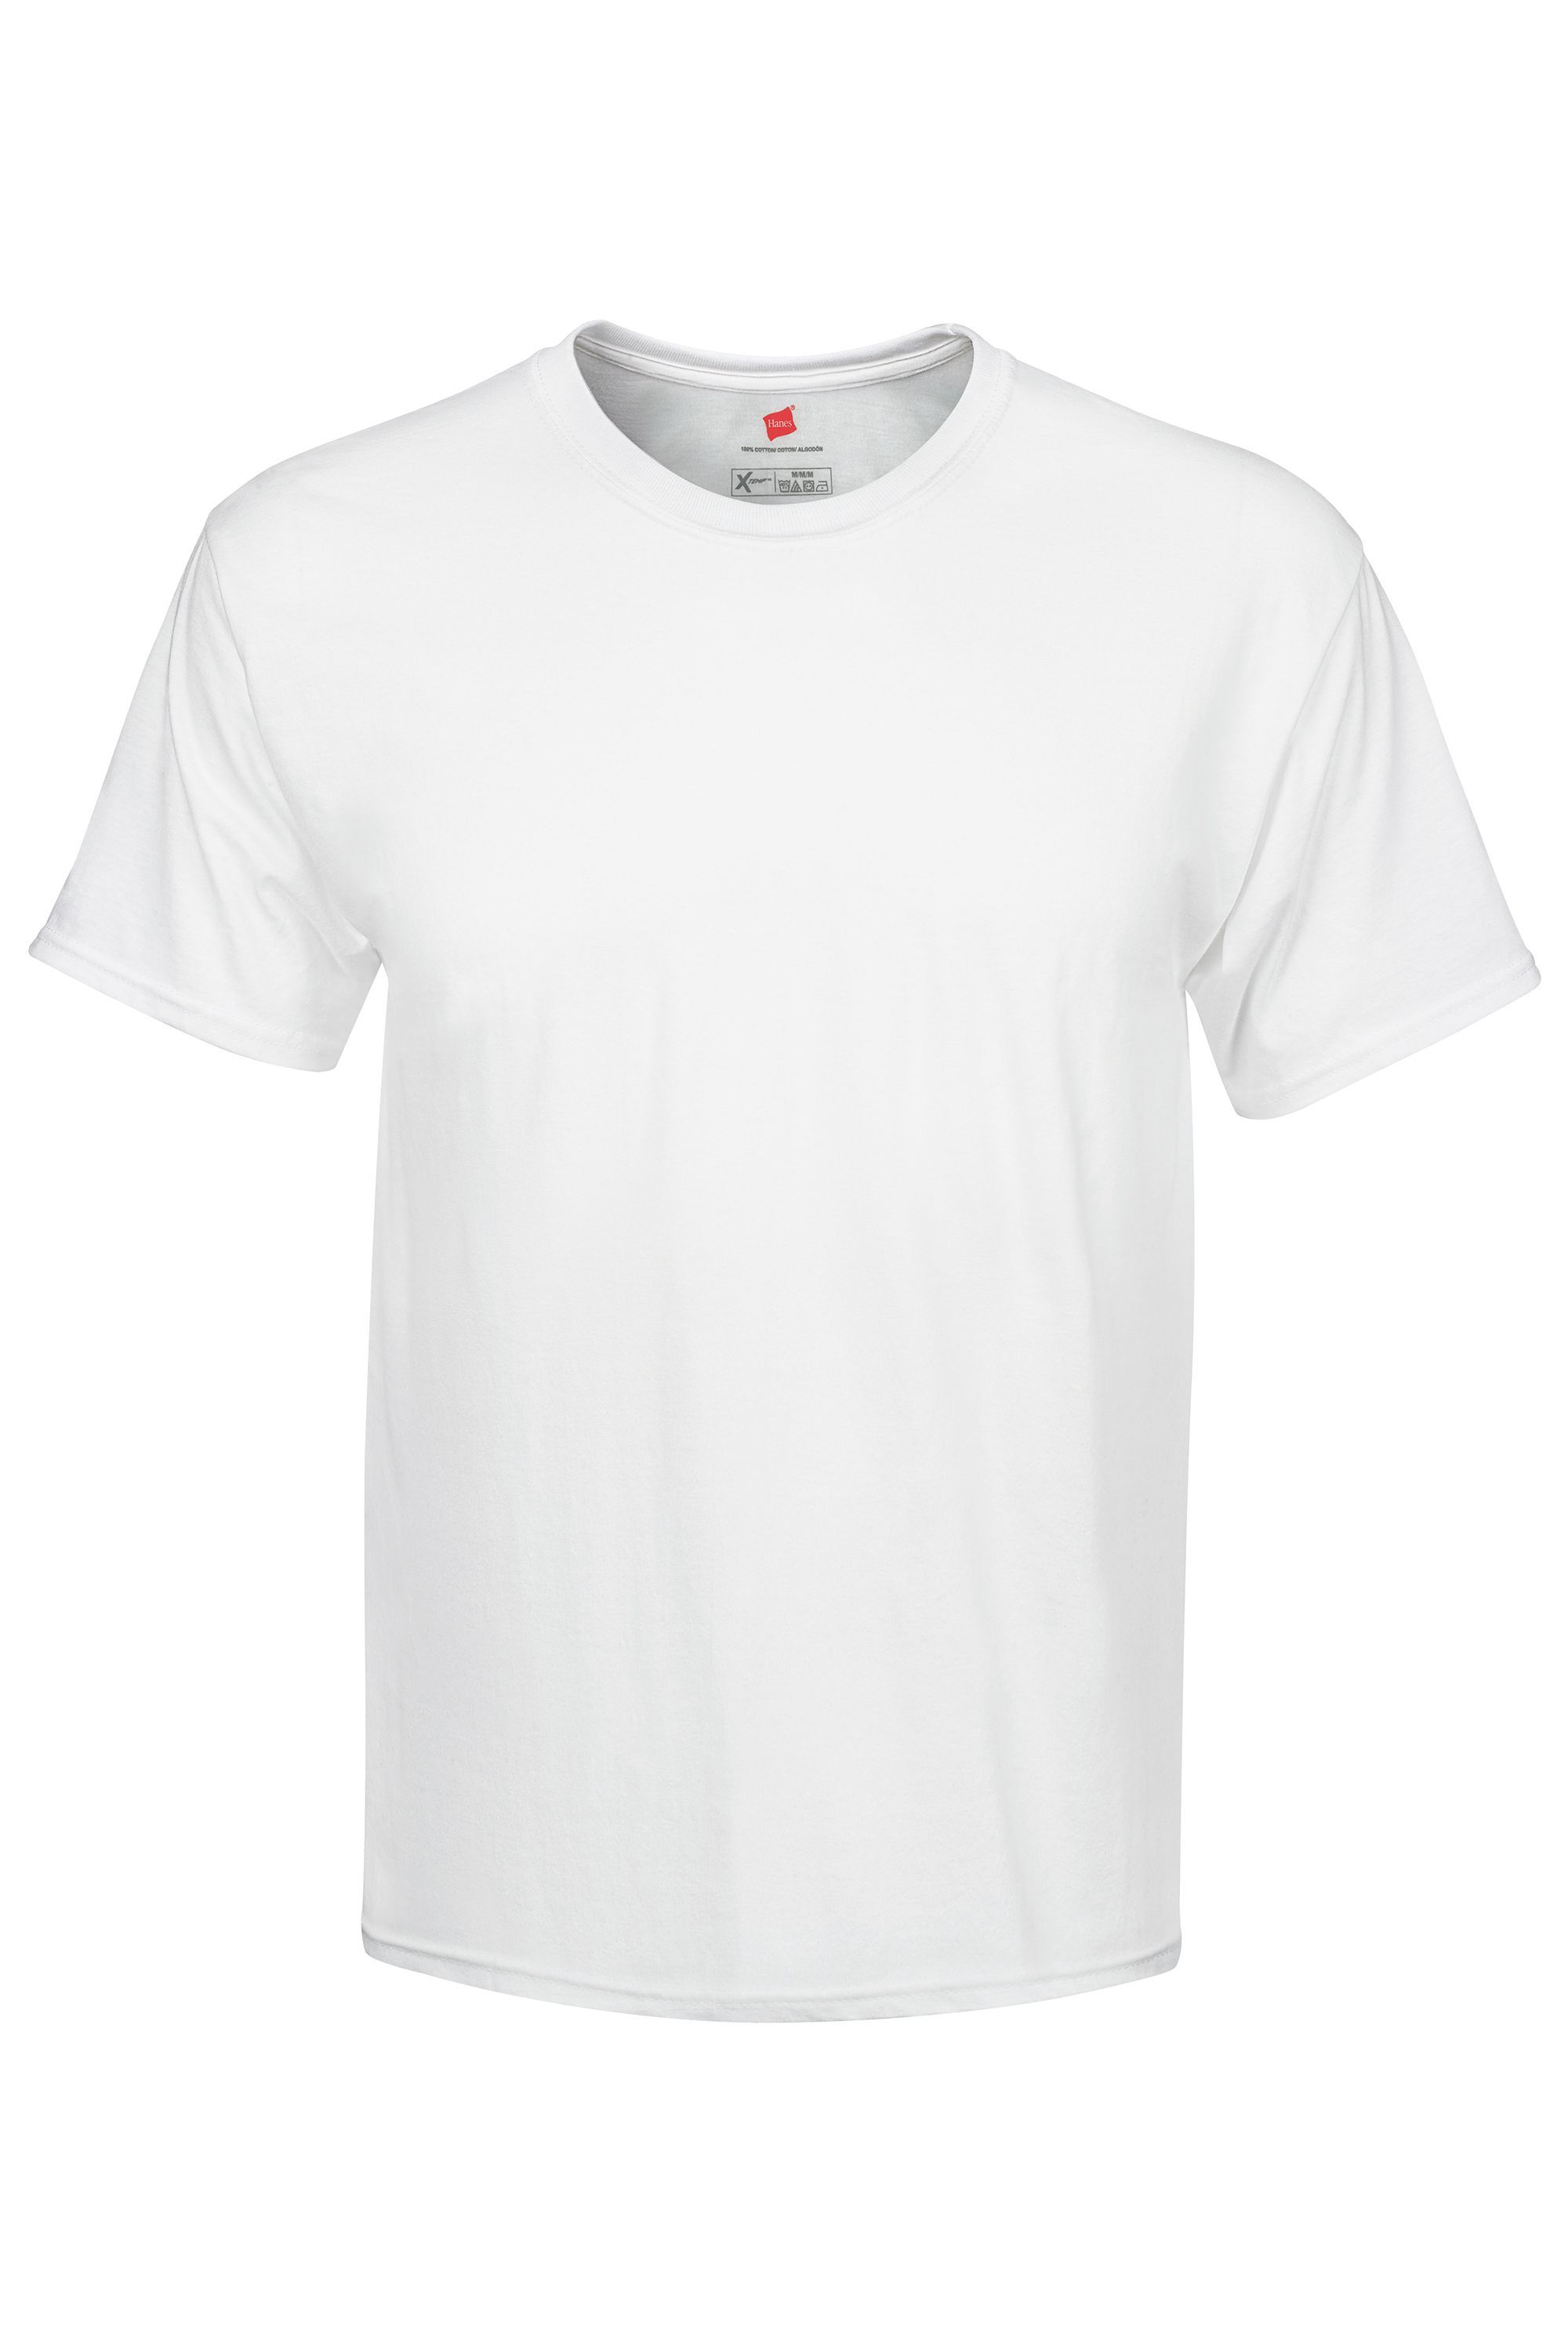 7830e9489e 10 Best White T Shirts - Perfect White Tee Shirts To Add to Your Summer  Wardrobe